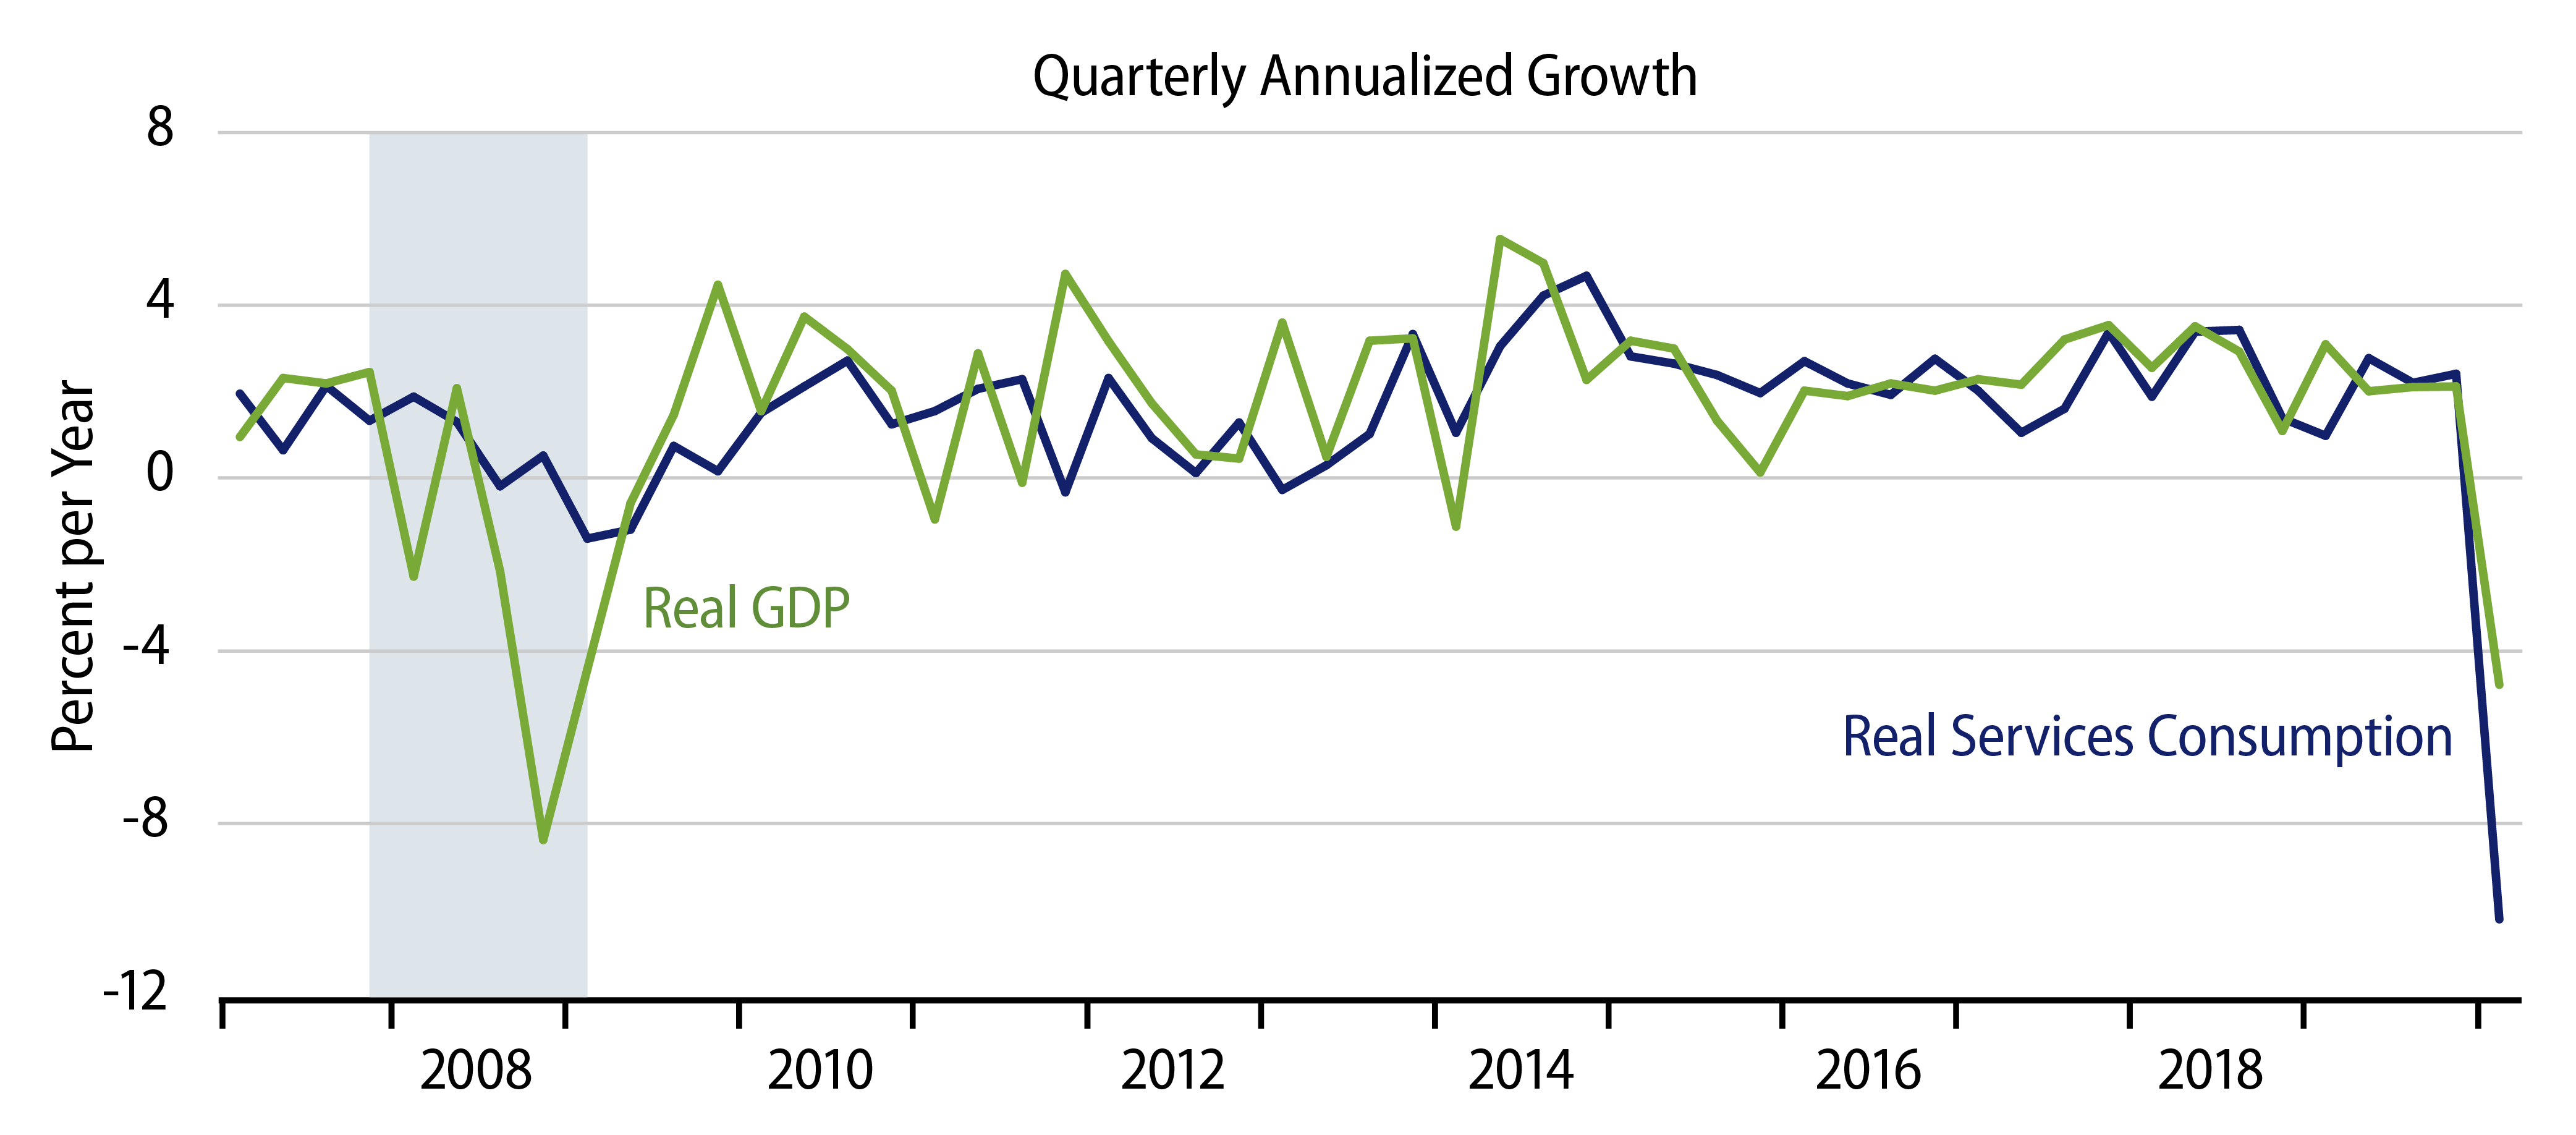 Explore Growth in Real Services Consumption vs. Real GDP